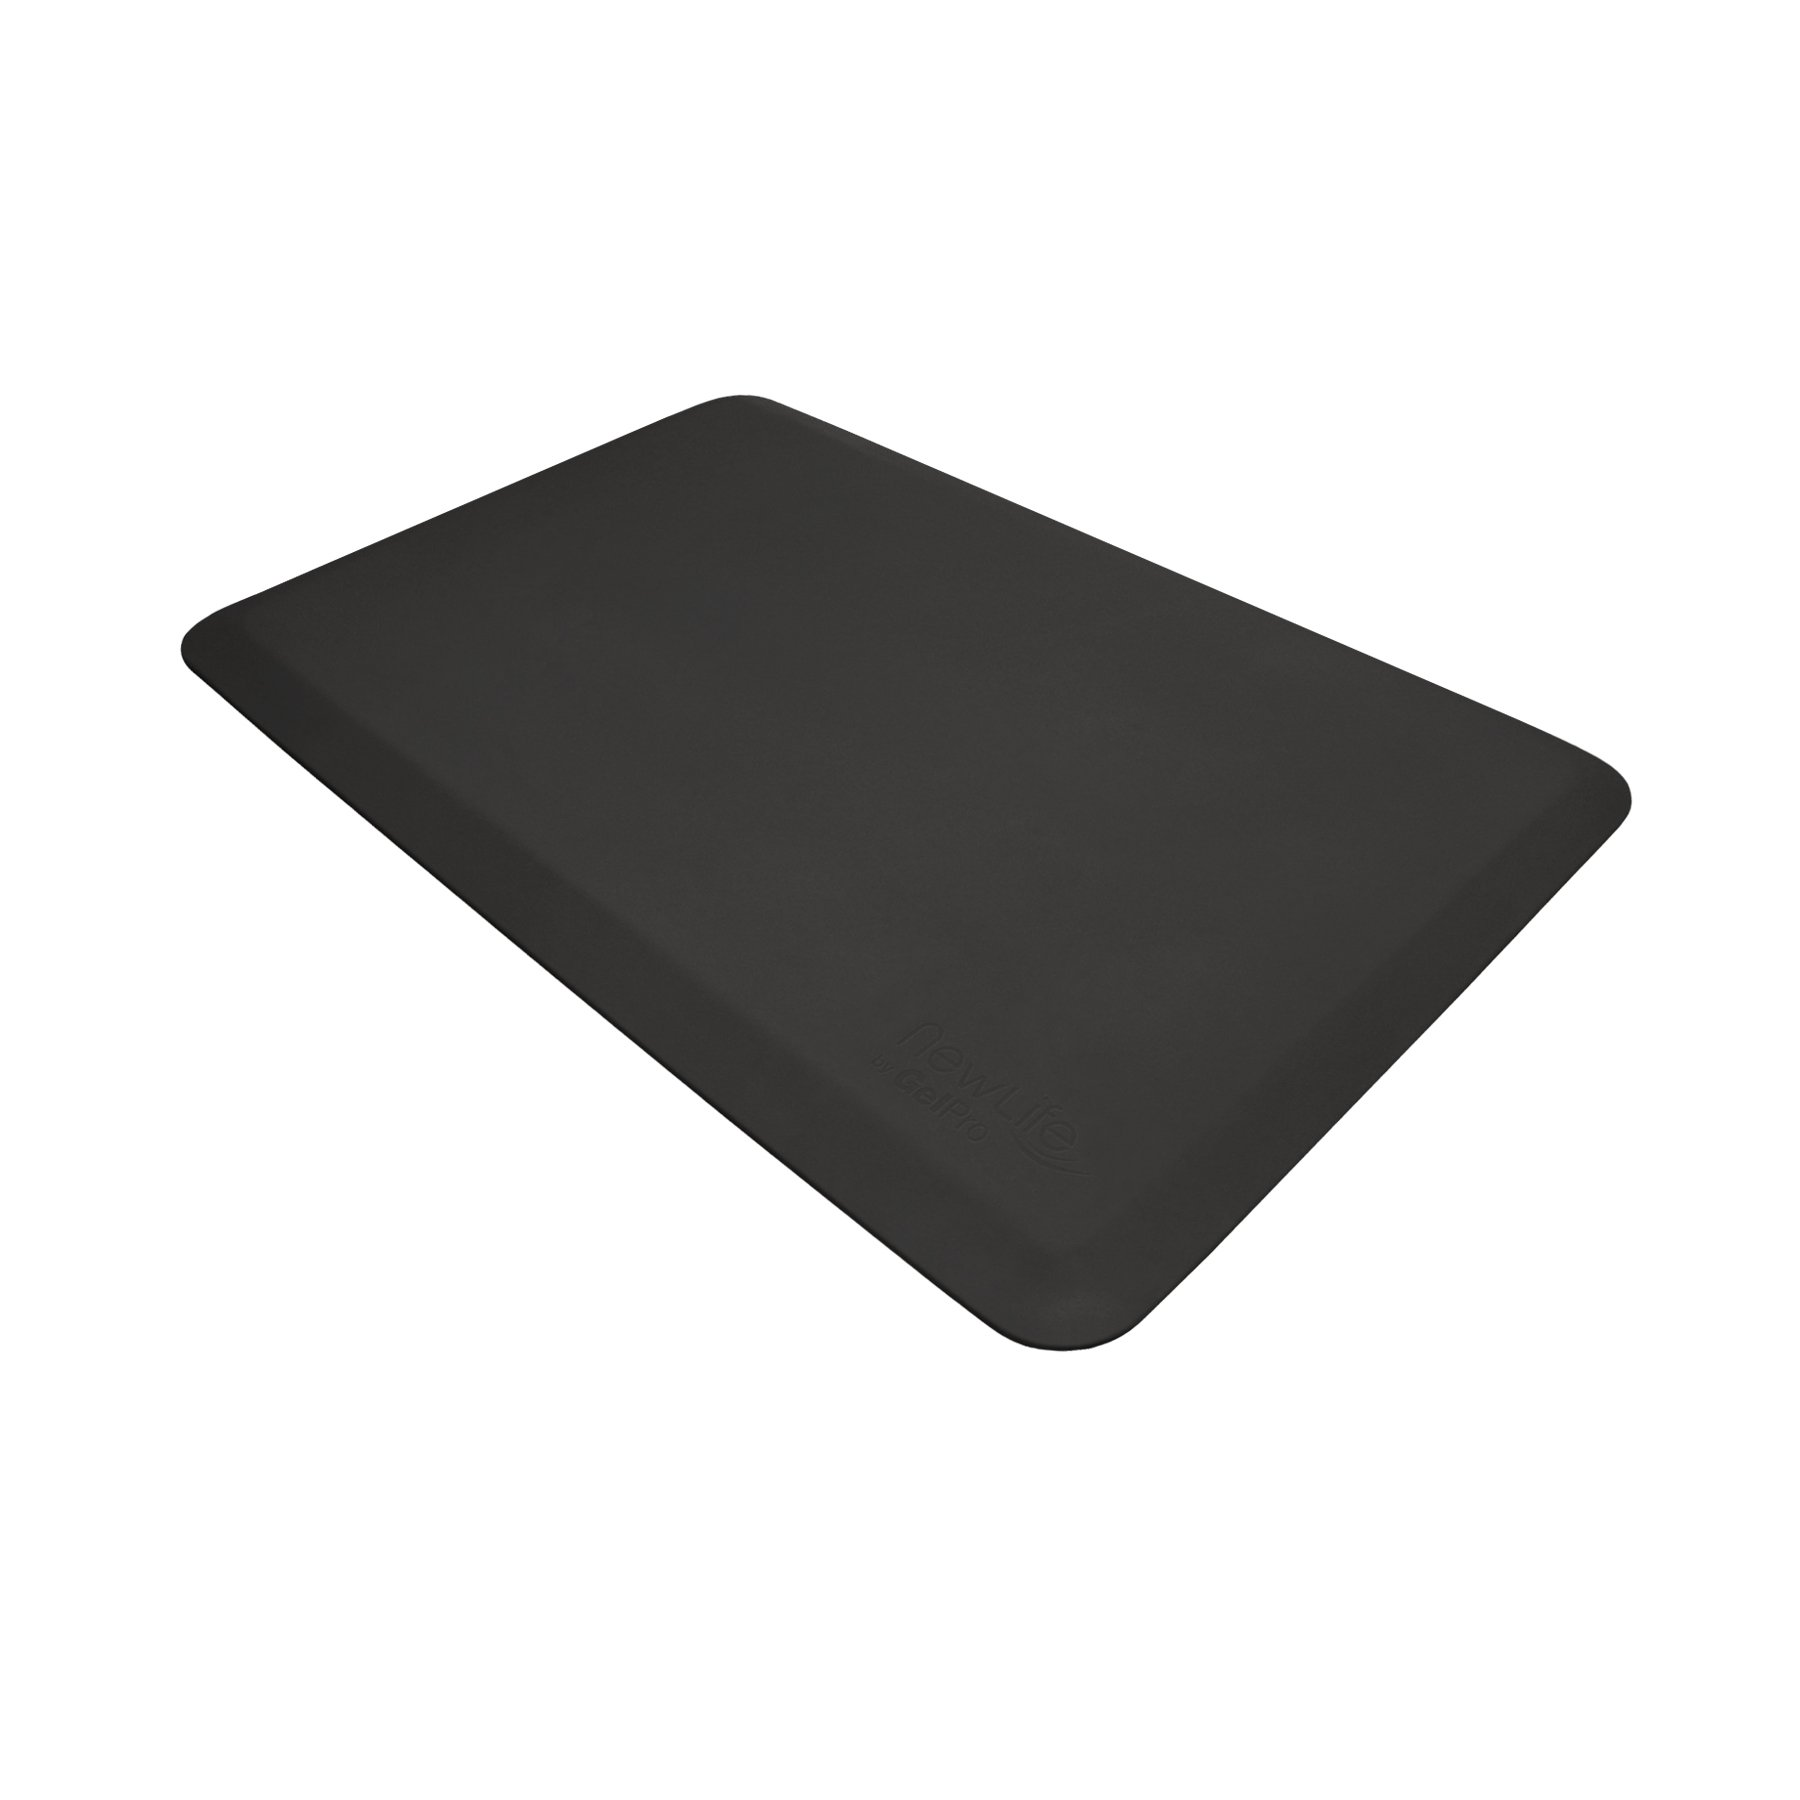 "NewLife by GelPro Anti Fatigue Mat: Eco-Pro Foam Anti-Fatigue Comfort Mat - Standing Desk Pad - Professional Floor Mats for Commercial & Industrial Work - 20"" x 32"" Non Slip Ergonomic Mat - Black"